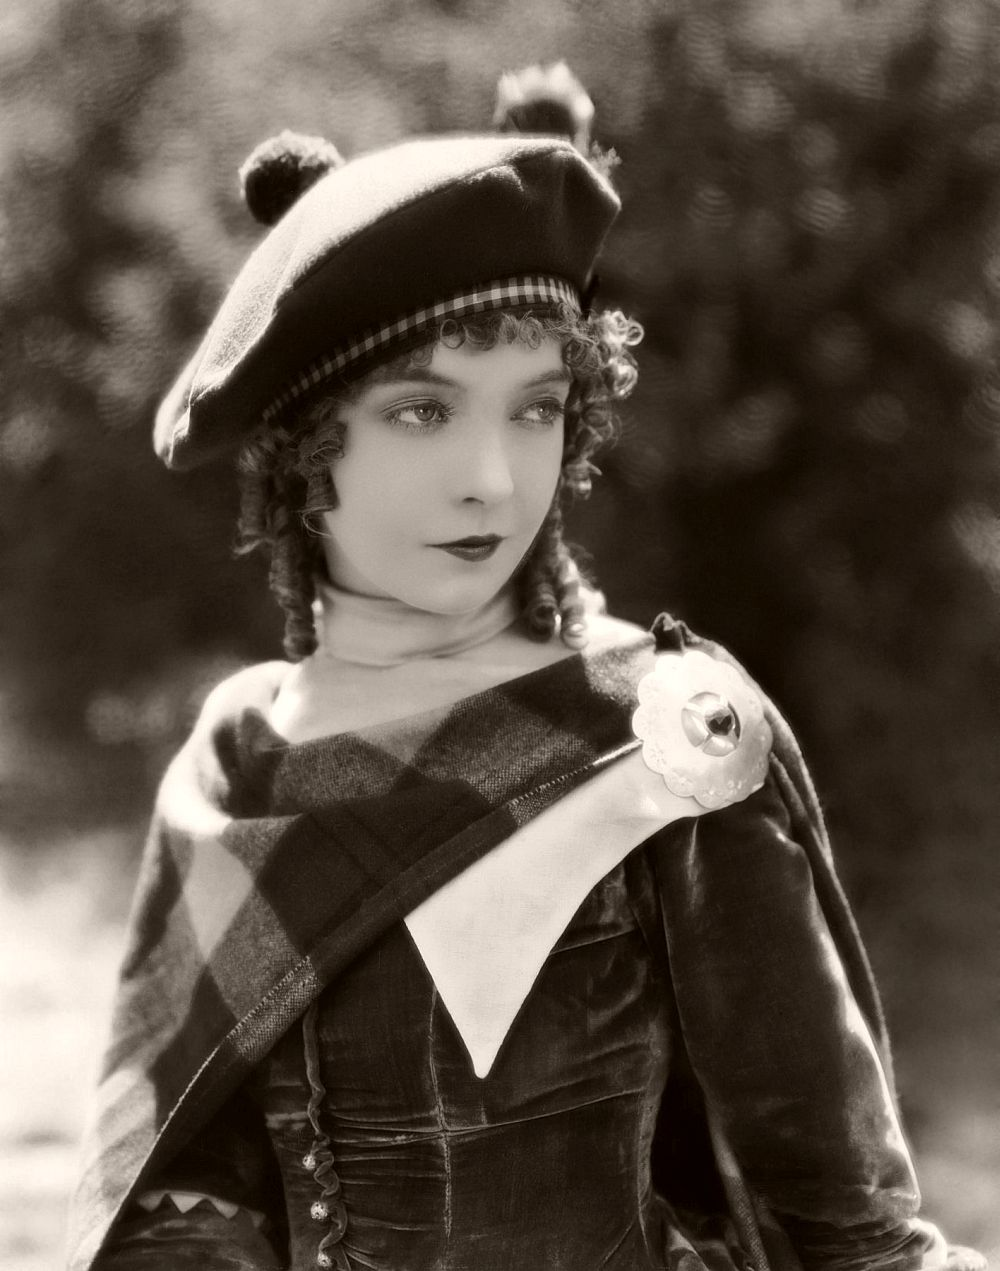 12th August 1926: Lillian Gish (1893 - 1993) plays the real-life Scottish heroine of the film 'Annie Laurie', directed by John S Robertson.